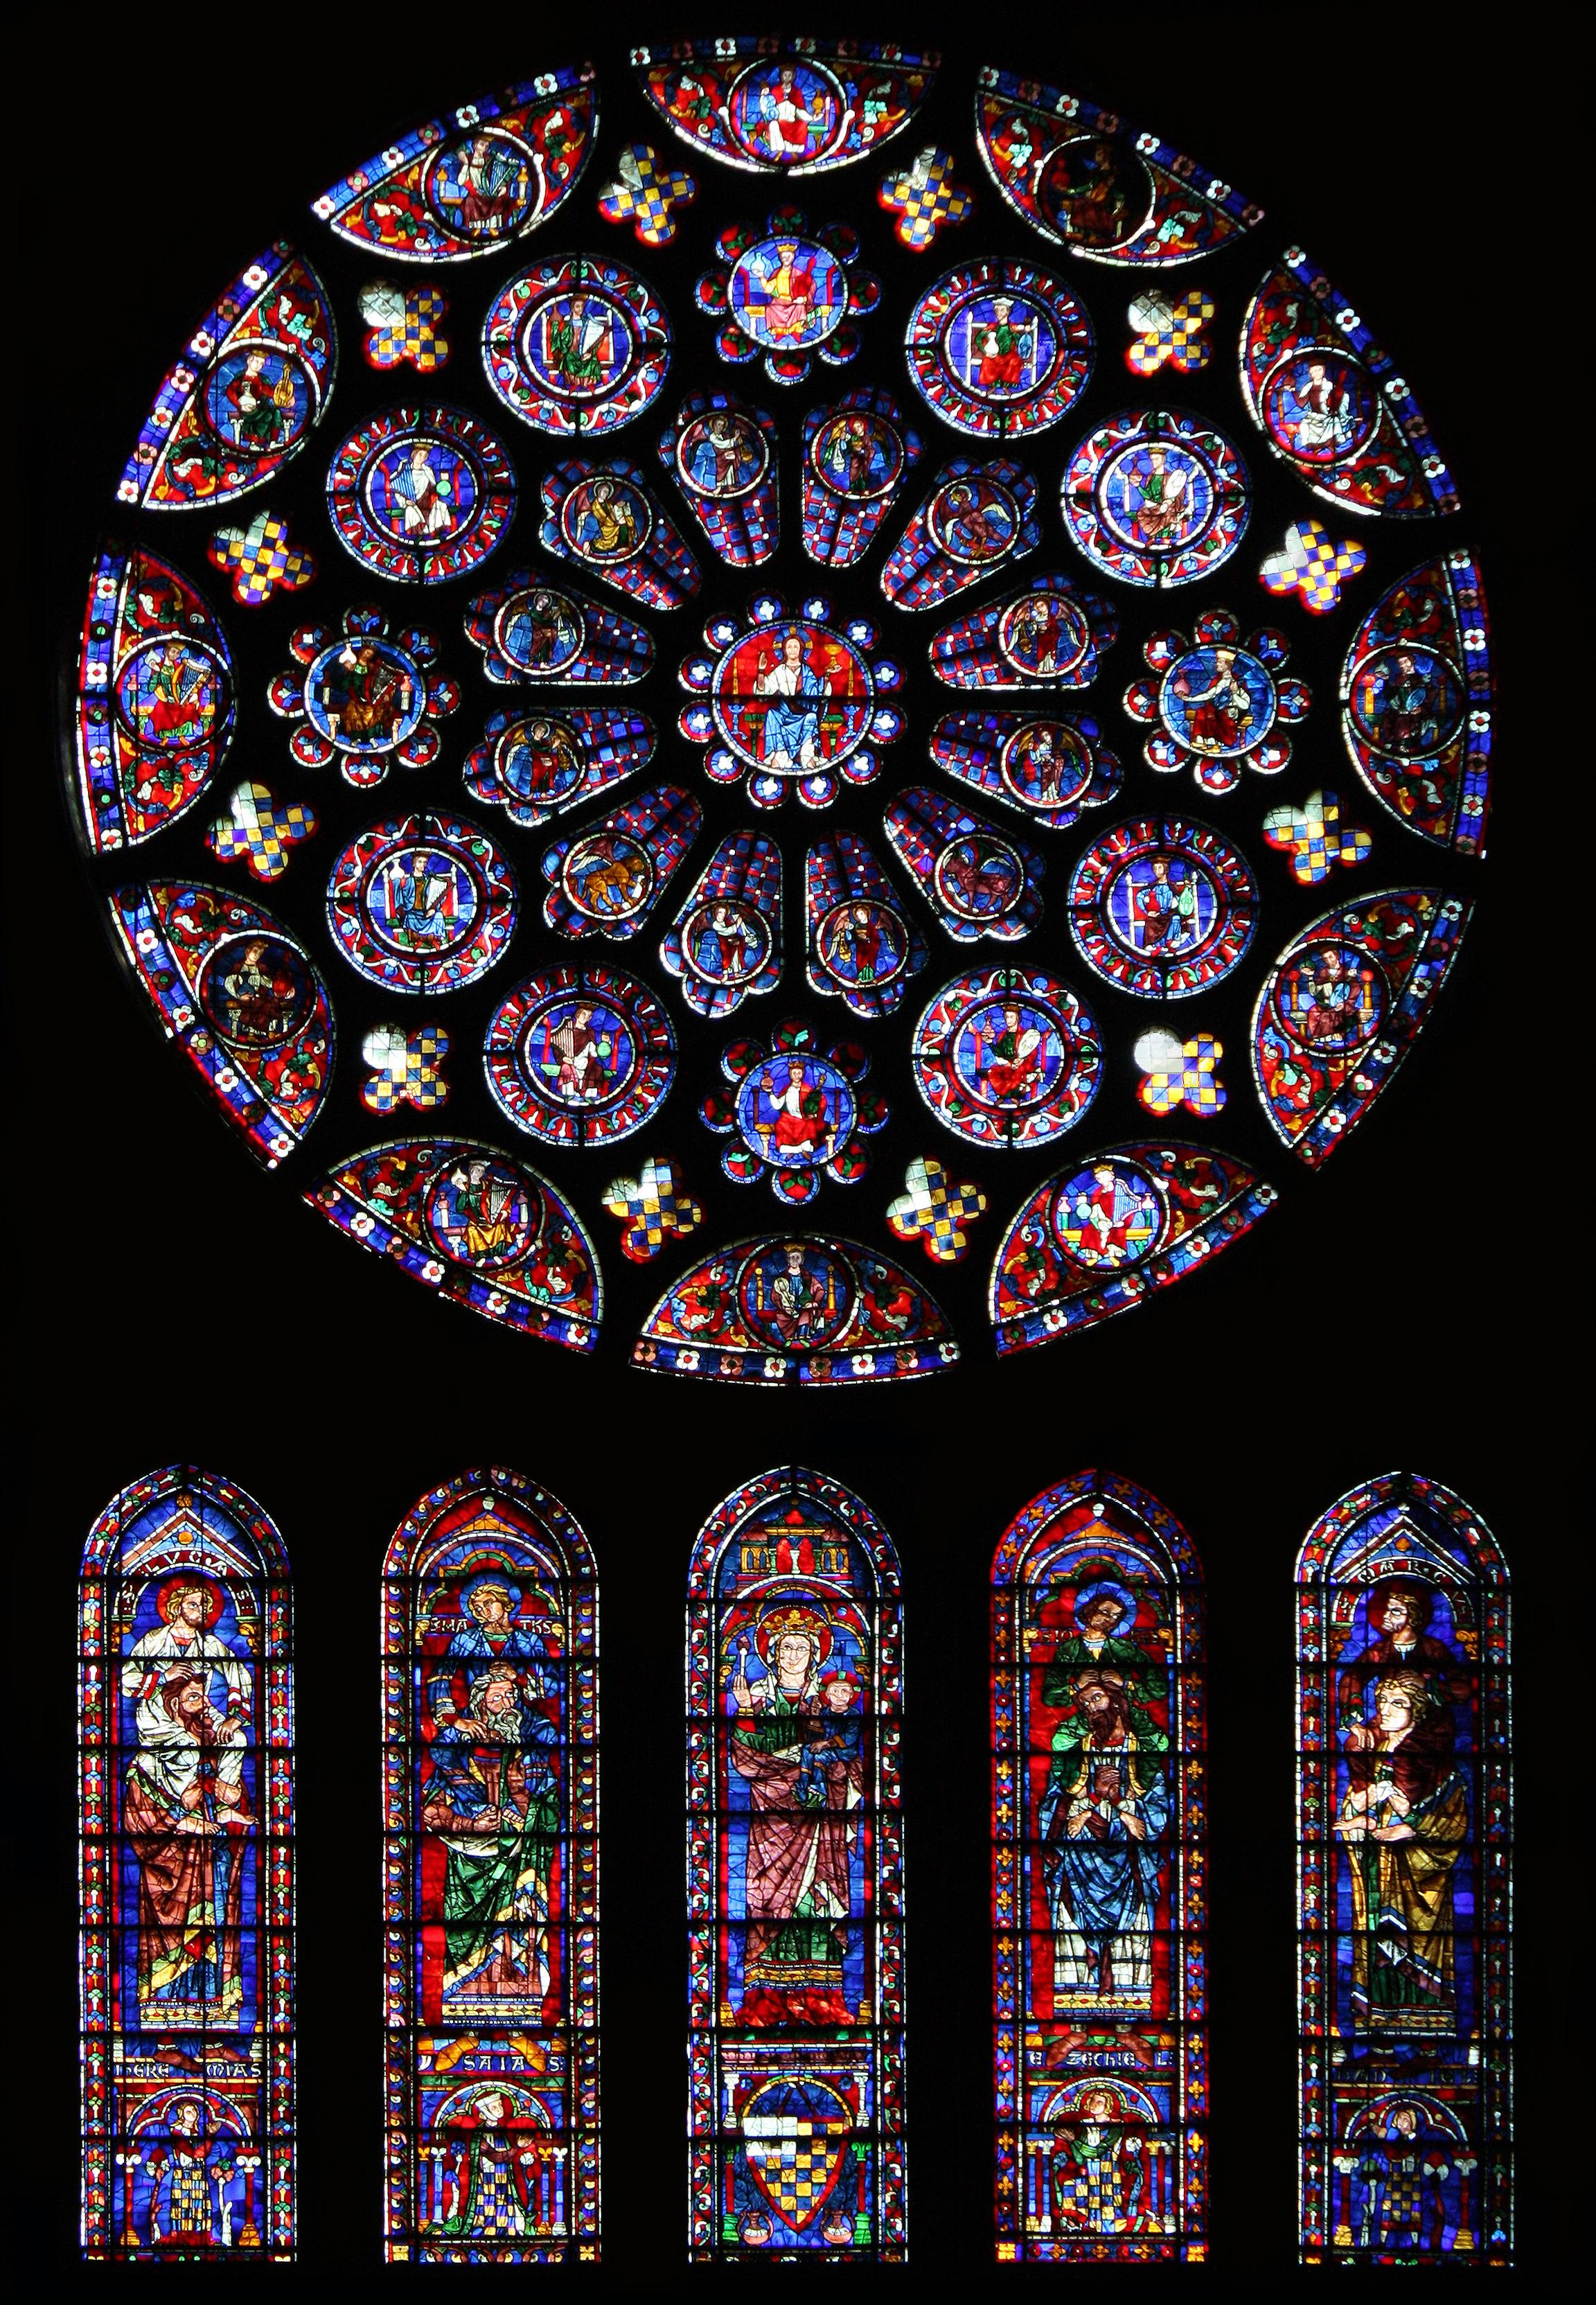 South_rose_window_of_Chartres_Cathedral01.jpg